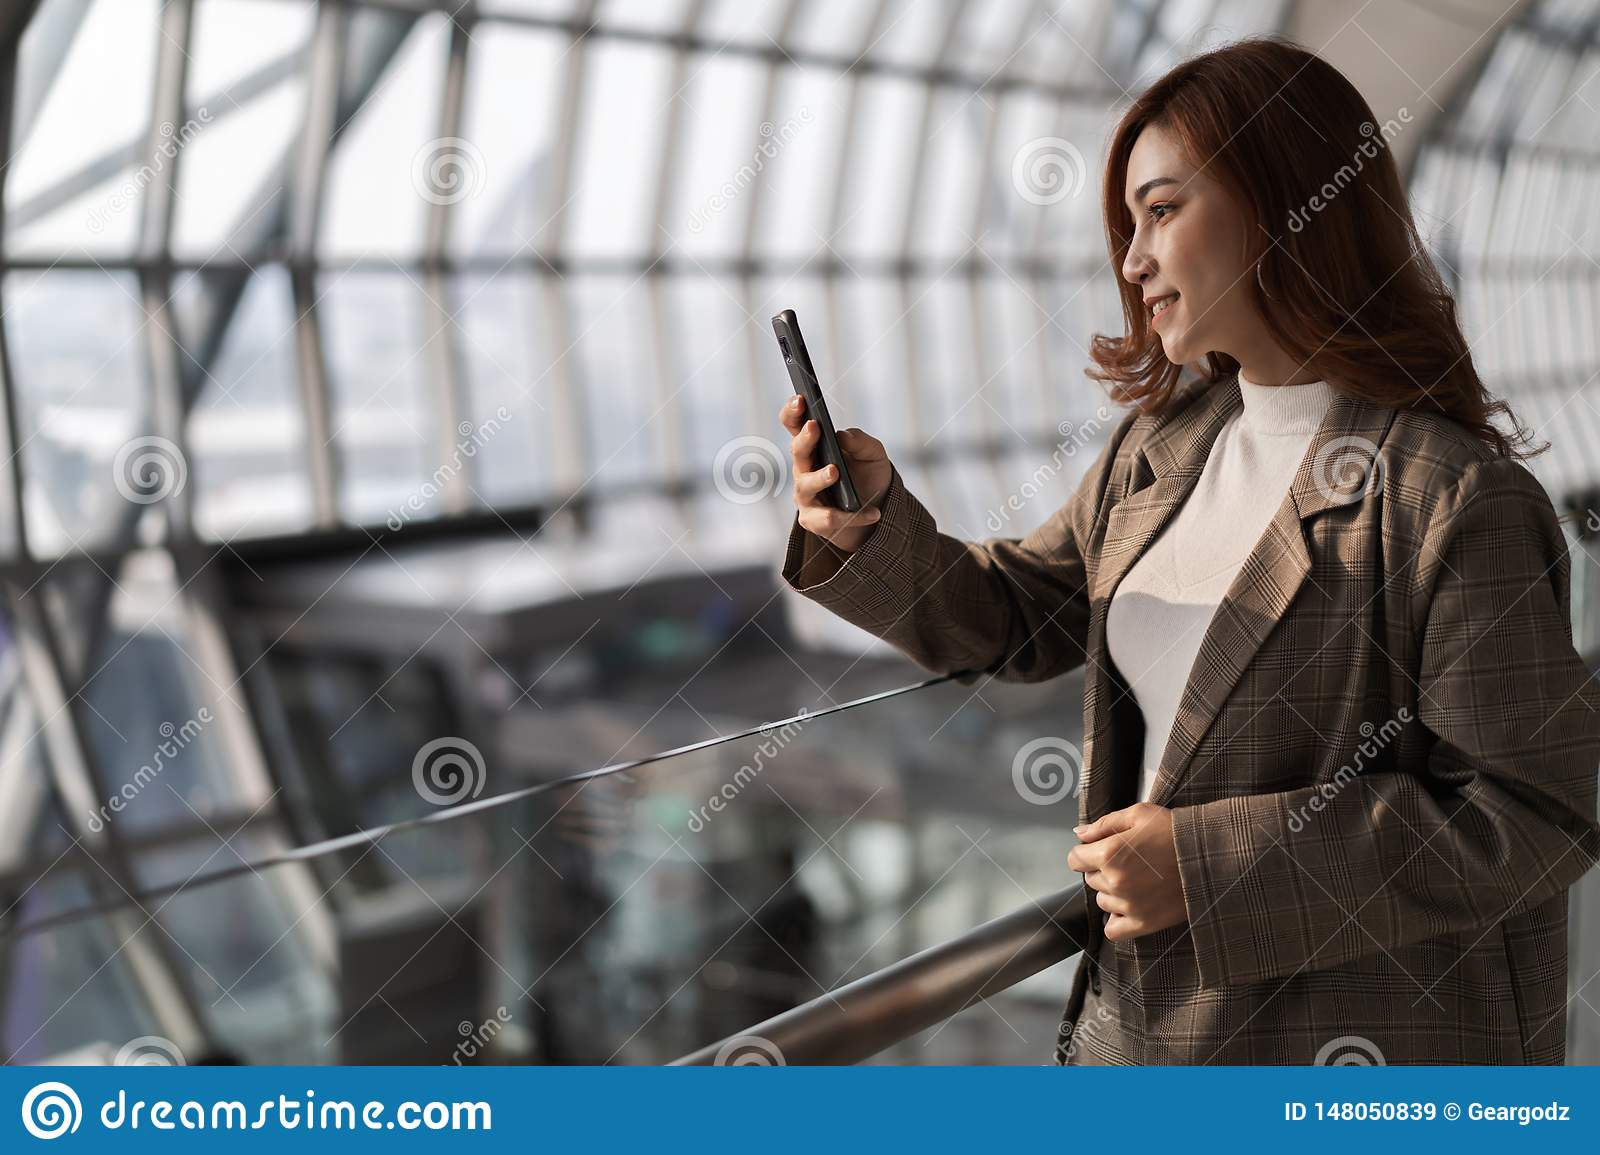 woman waiting for flight and using smart phone in airport